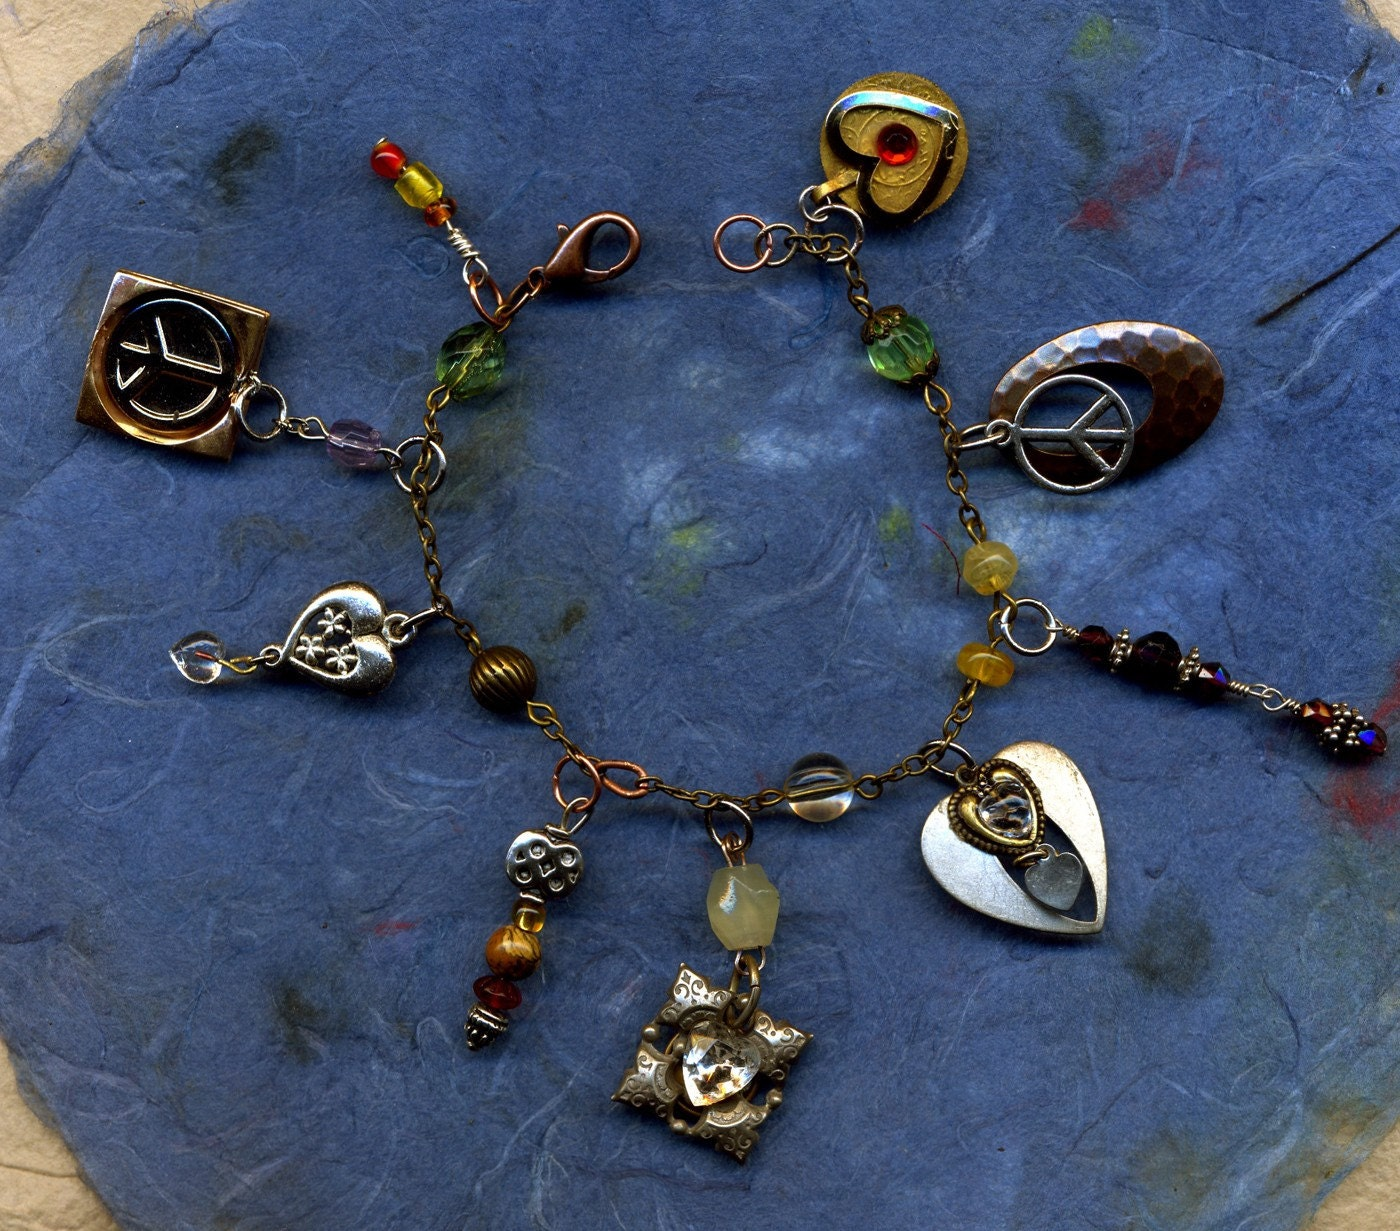 LOVE AND PEACE    a Charm Bracelet for Making Change